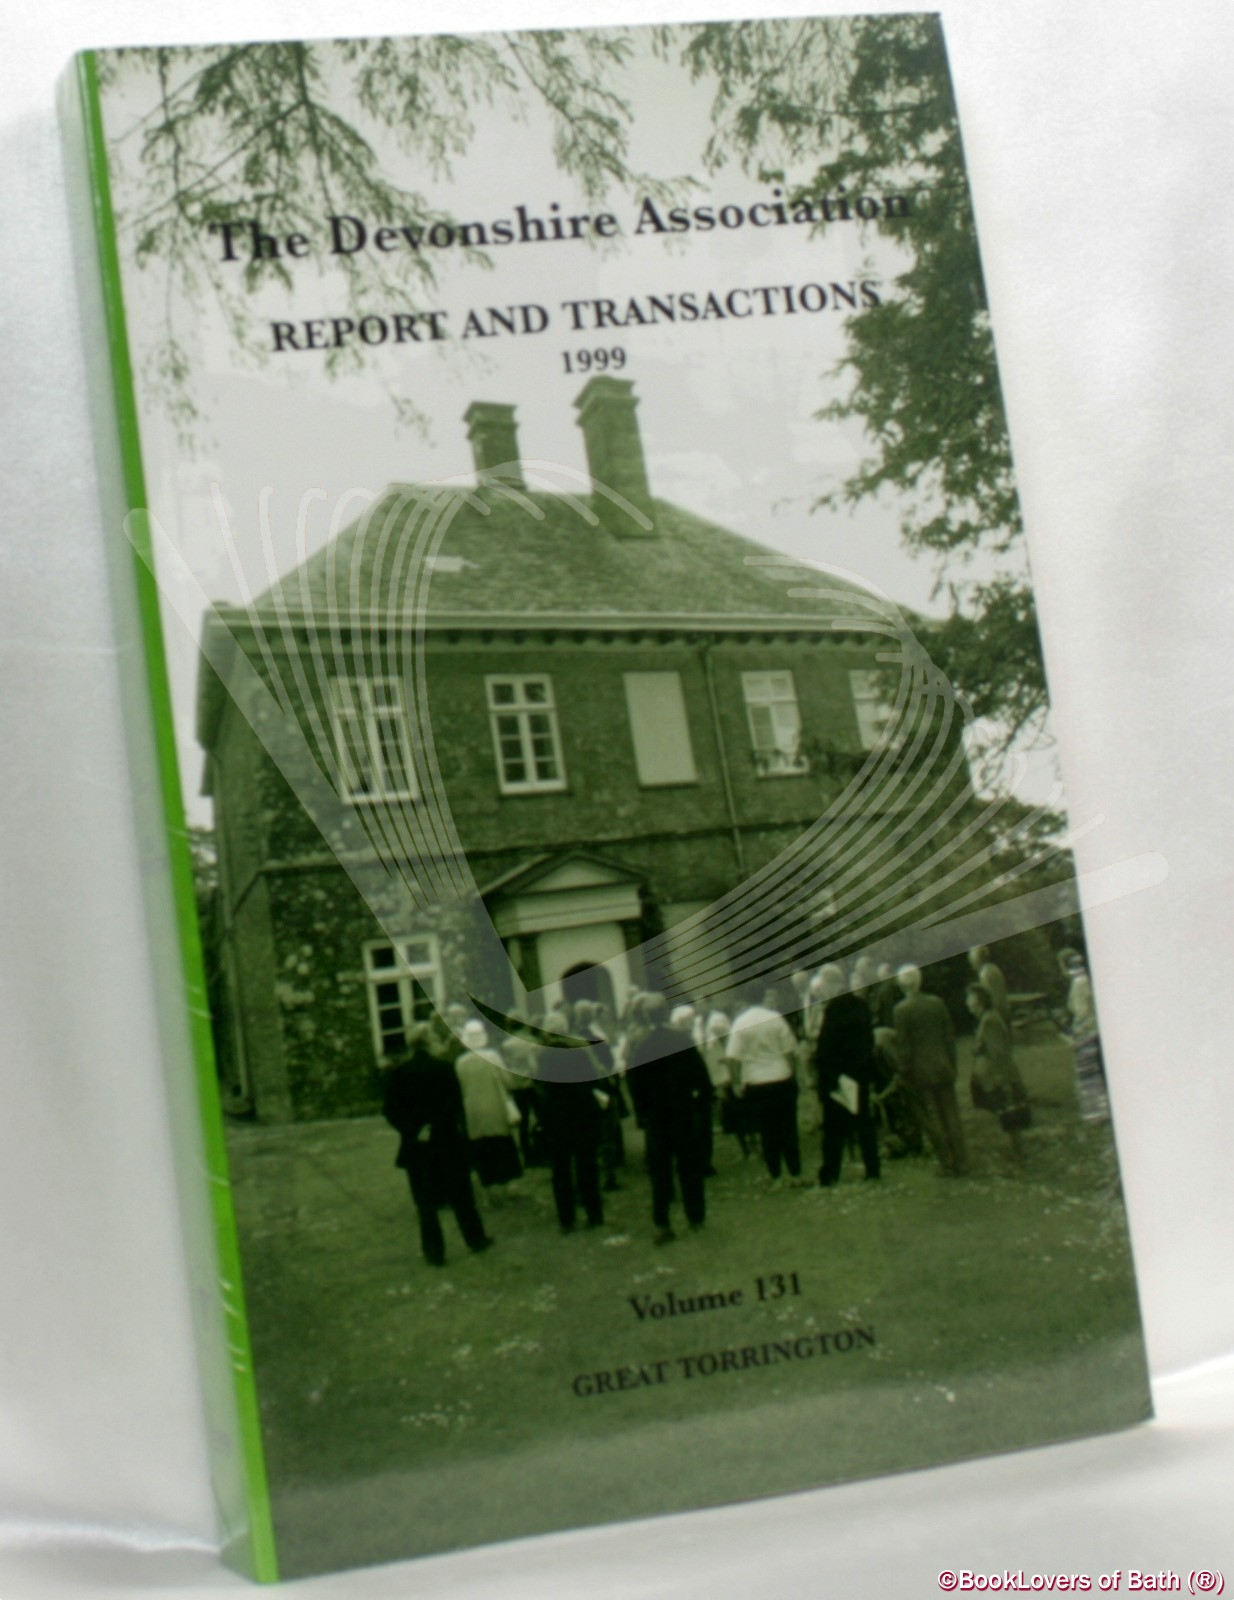 The Devonshire Association for the Advancement of Science, Literature and Art: Report and Transactions Volume 131 Great Torrington - Anon.